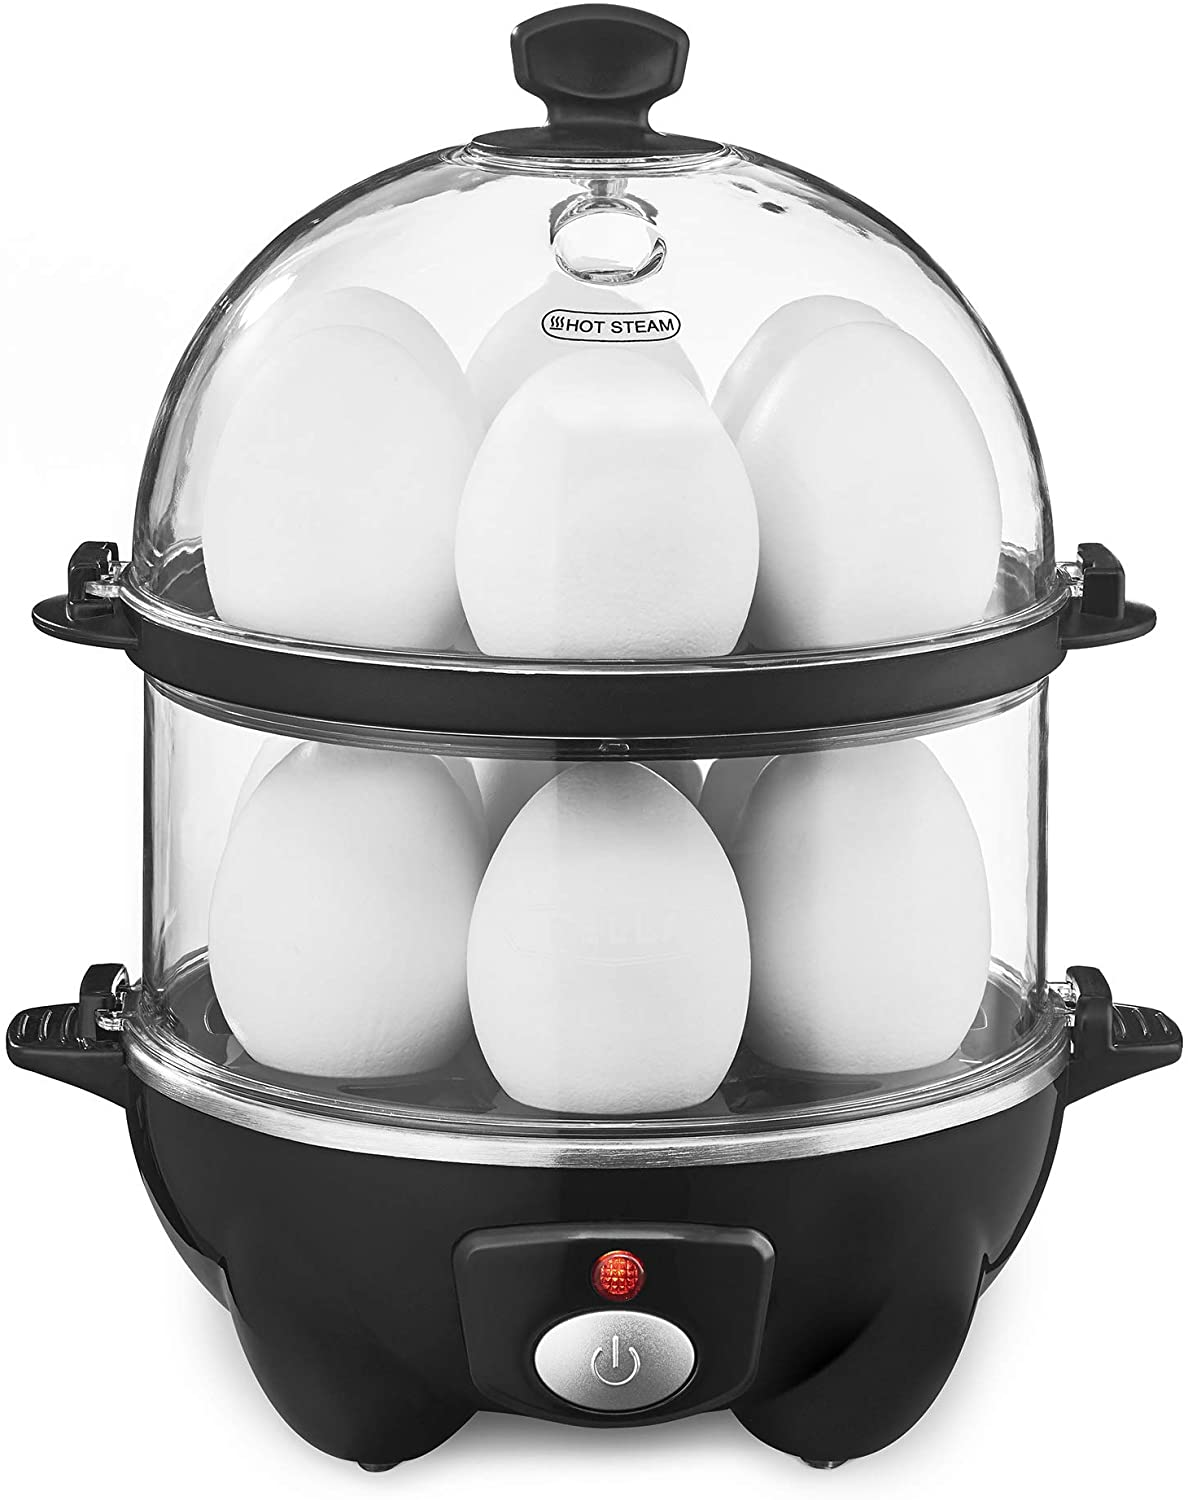 BELLA Double Tier Egg Cooker, Boiler, Rapid Maker & Poacher, Meal Prep for Week, Family Sized Meals: Up To 12 Large Boiled Eggs, Dishwasher Safe, Poaching and Omelet Trays Included, One, Black